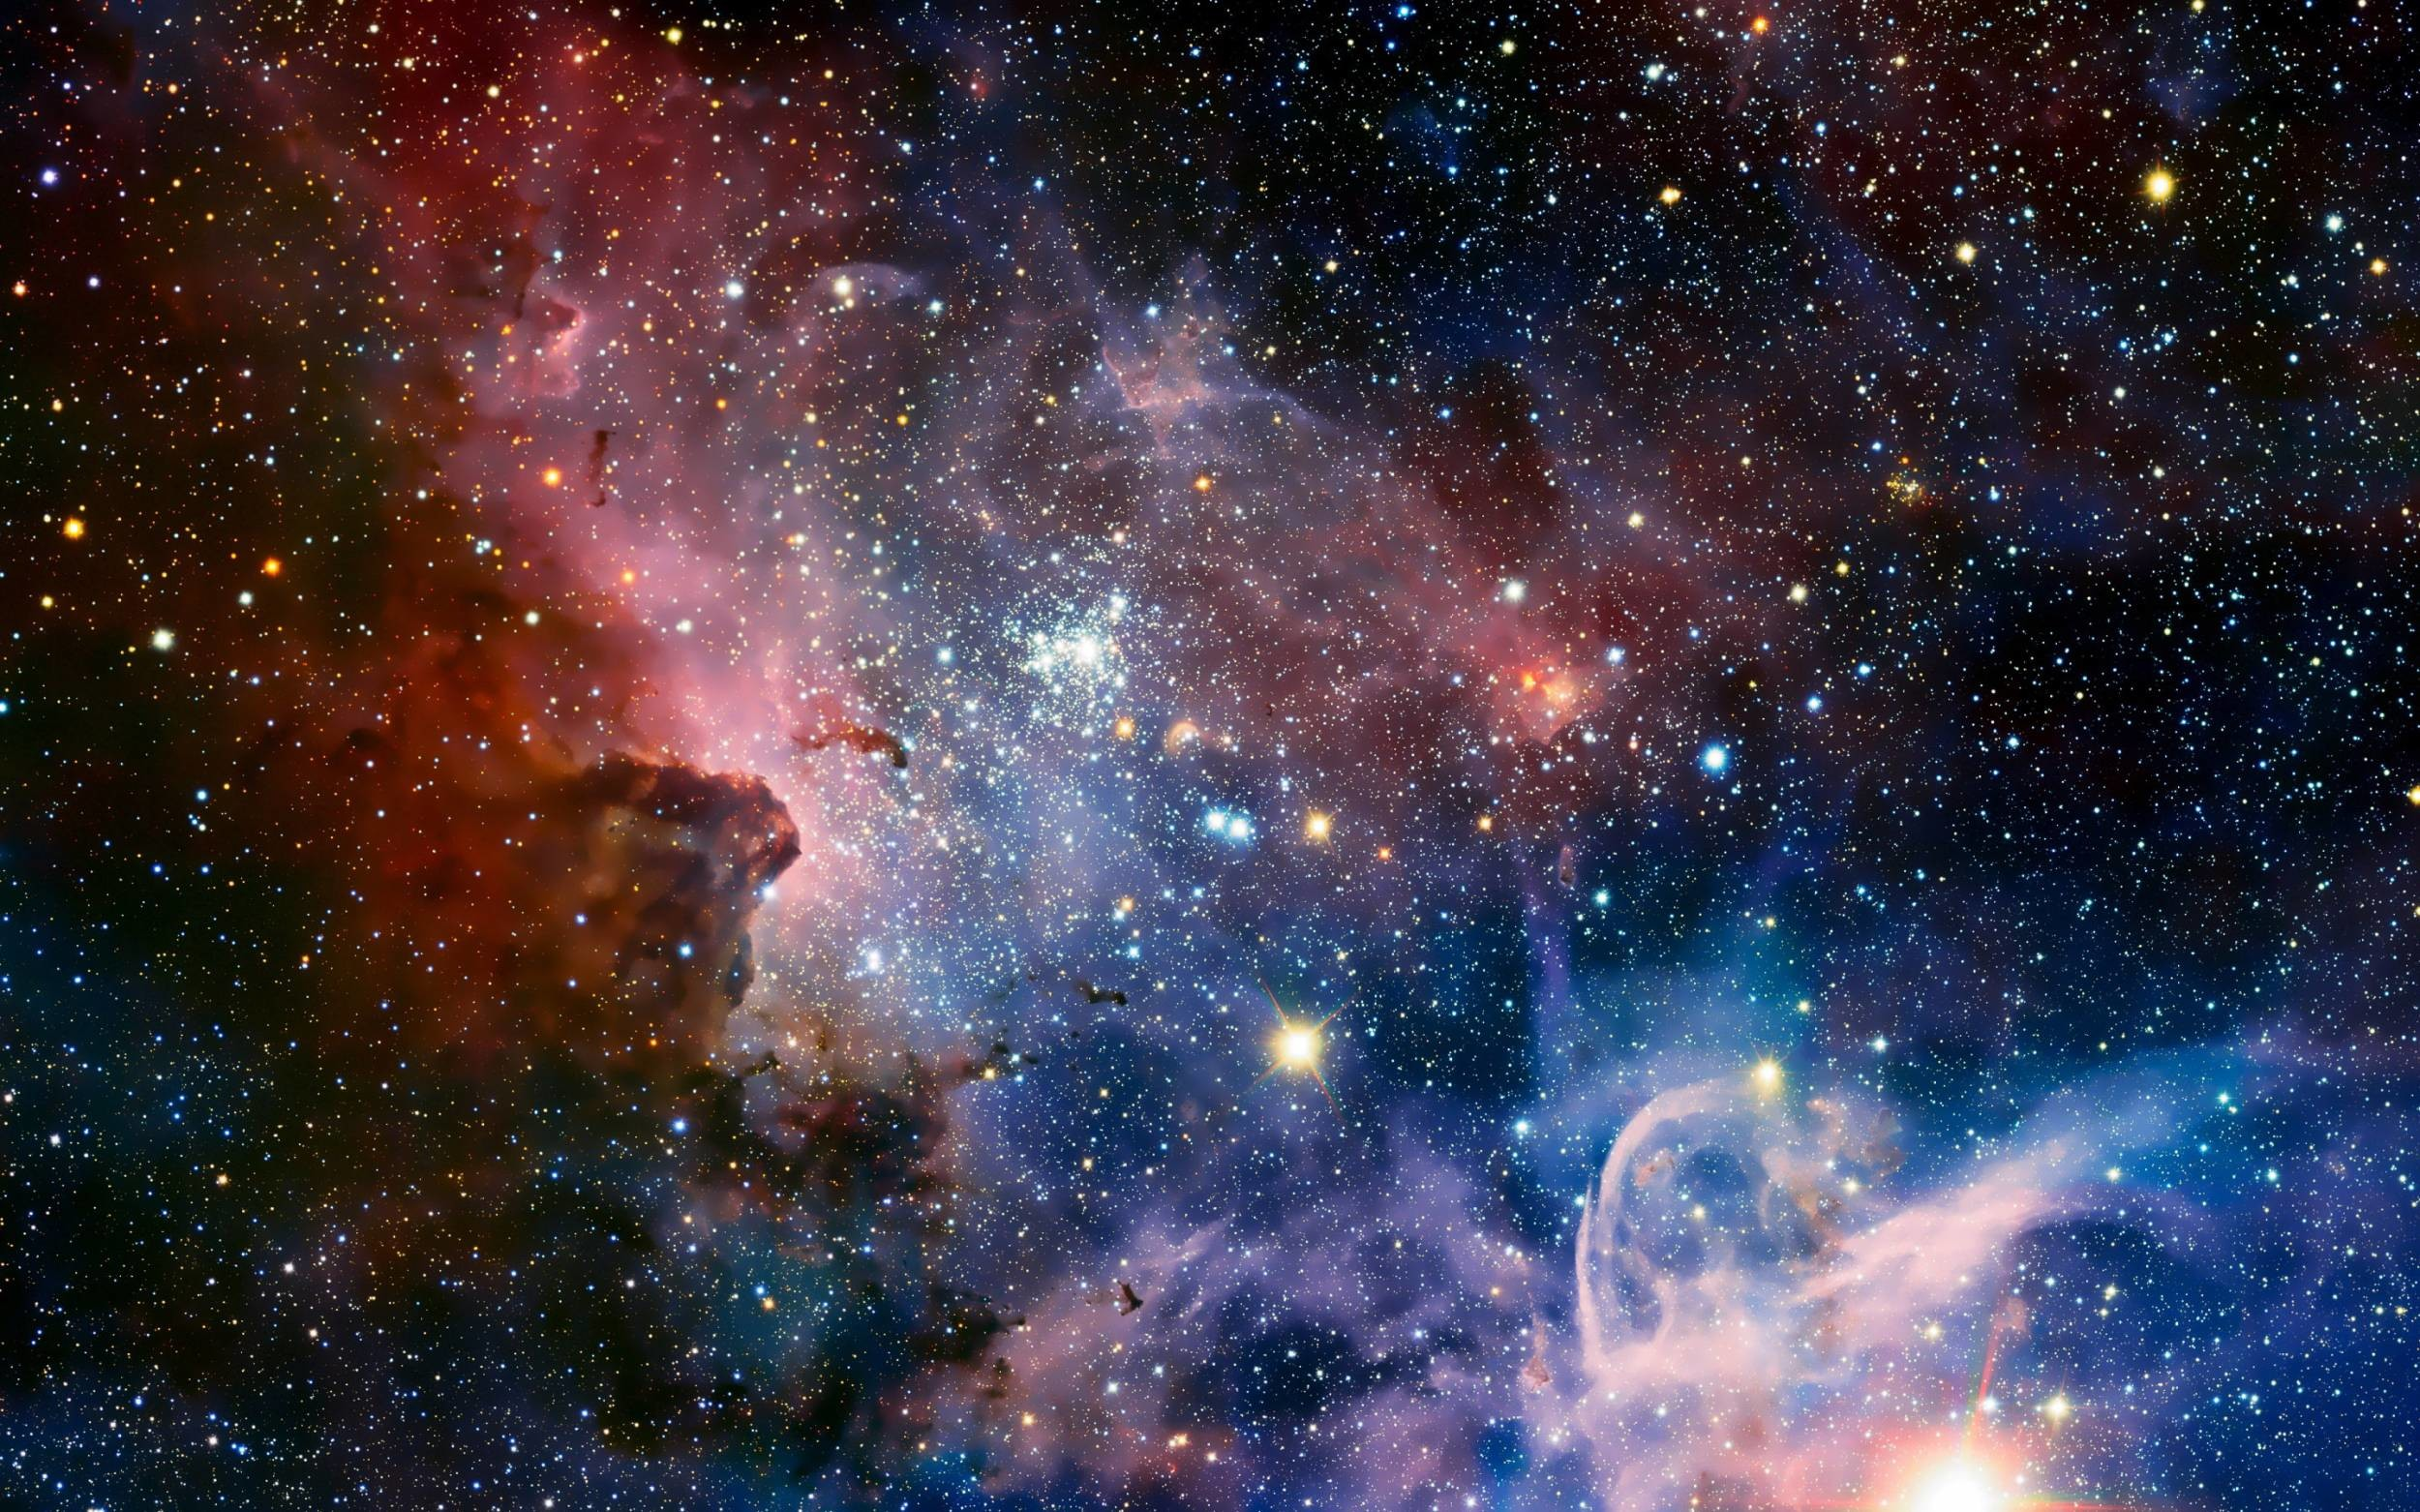 Ultra Hd Space Wallpaper 68 Images